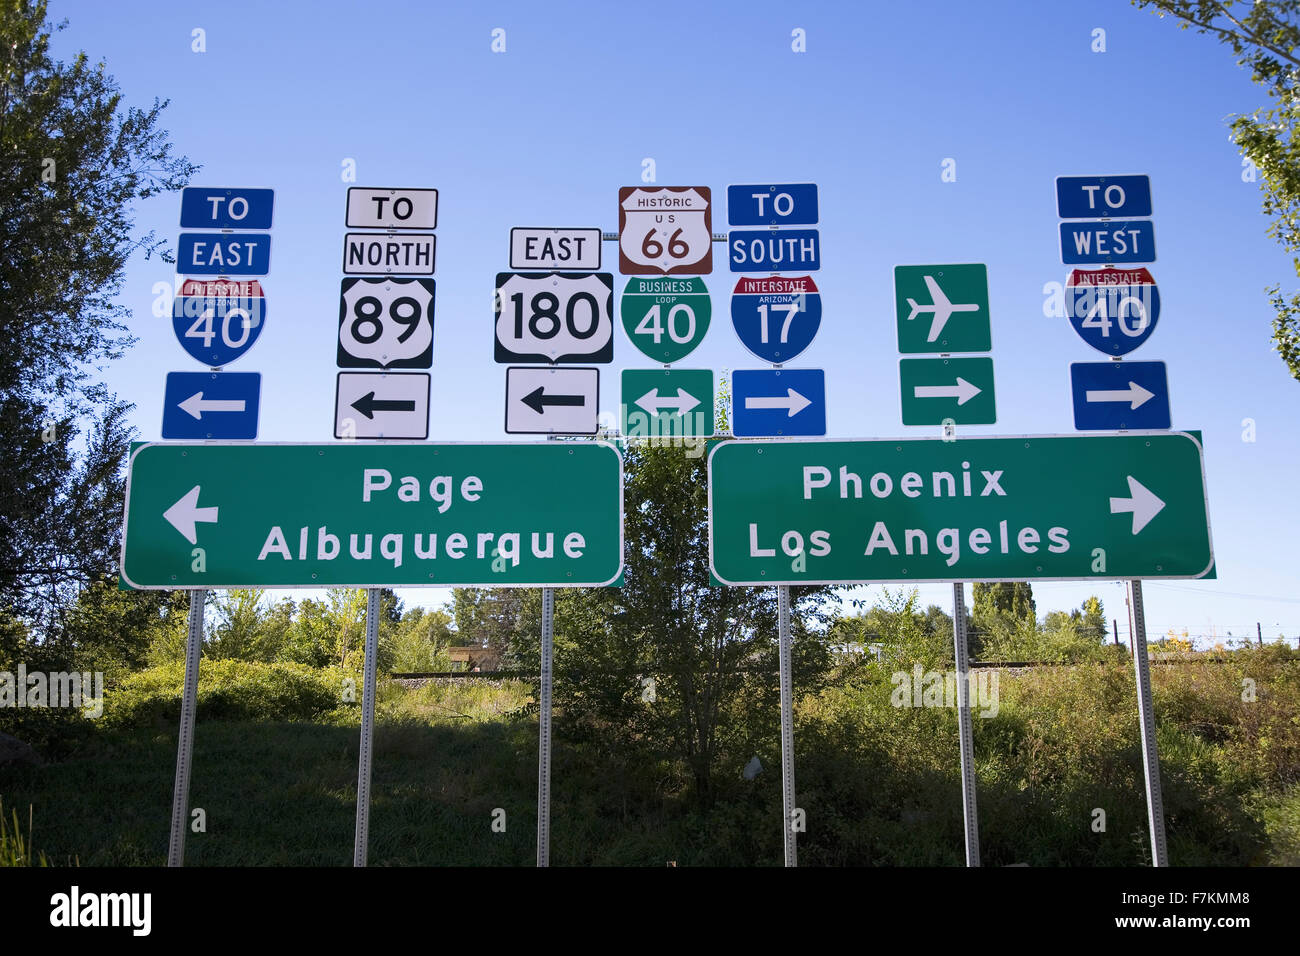 Business routes of Interstate 40